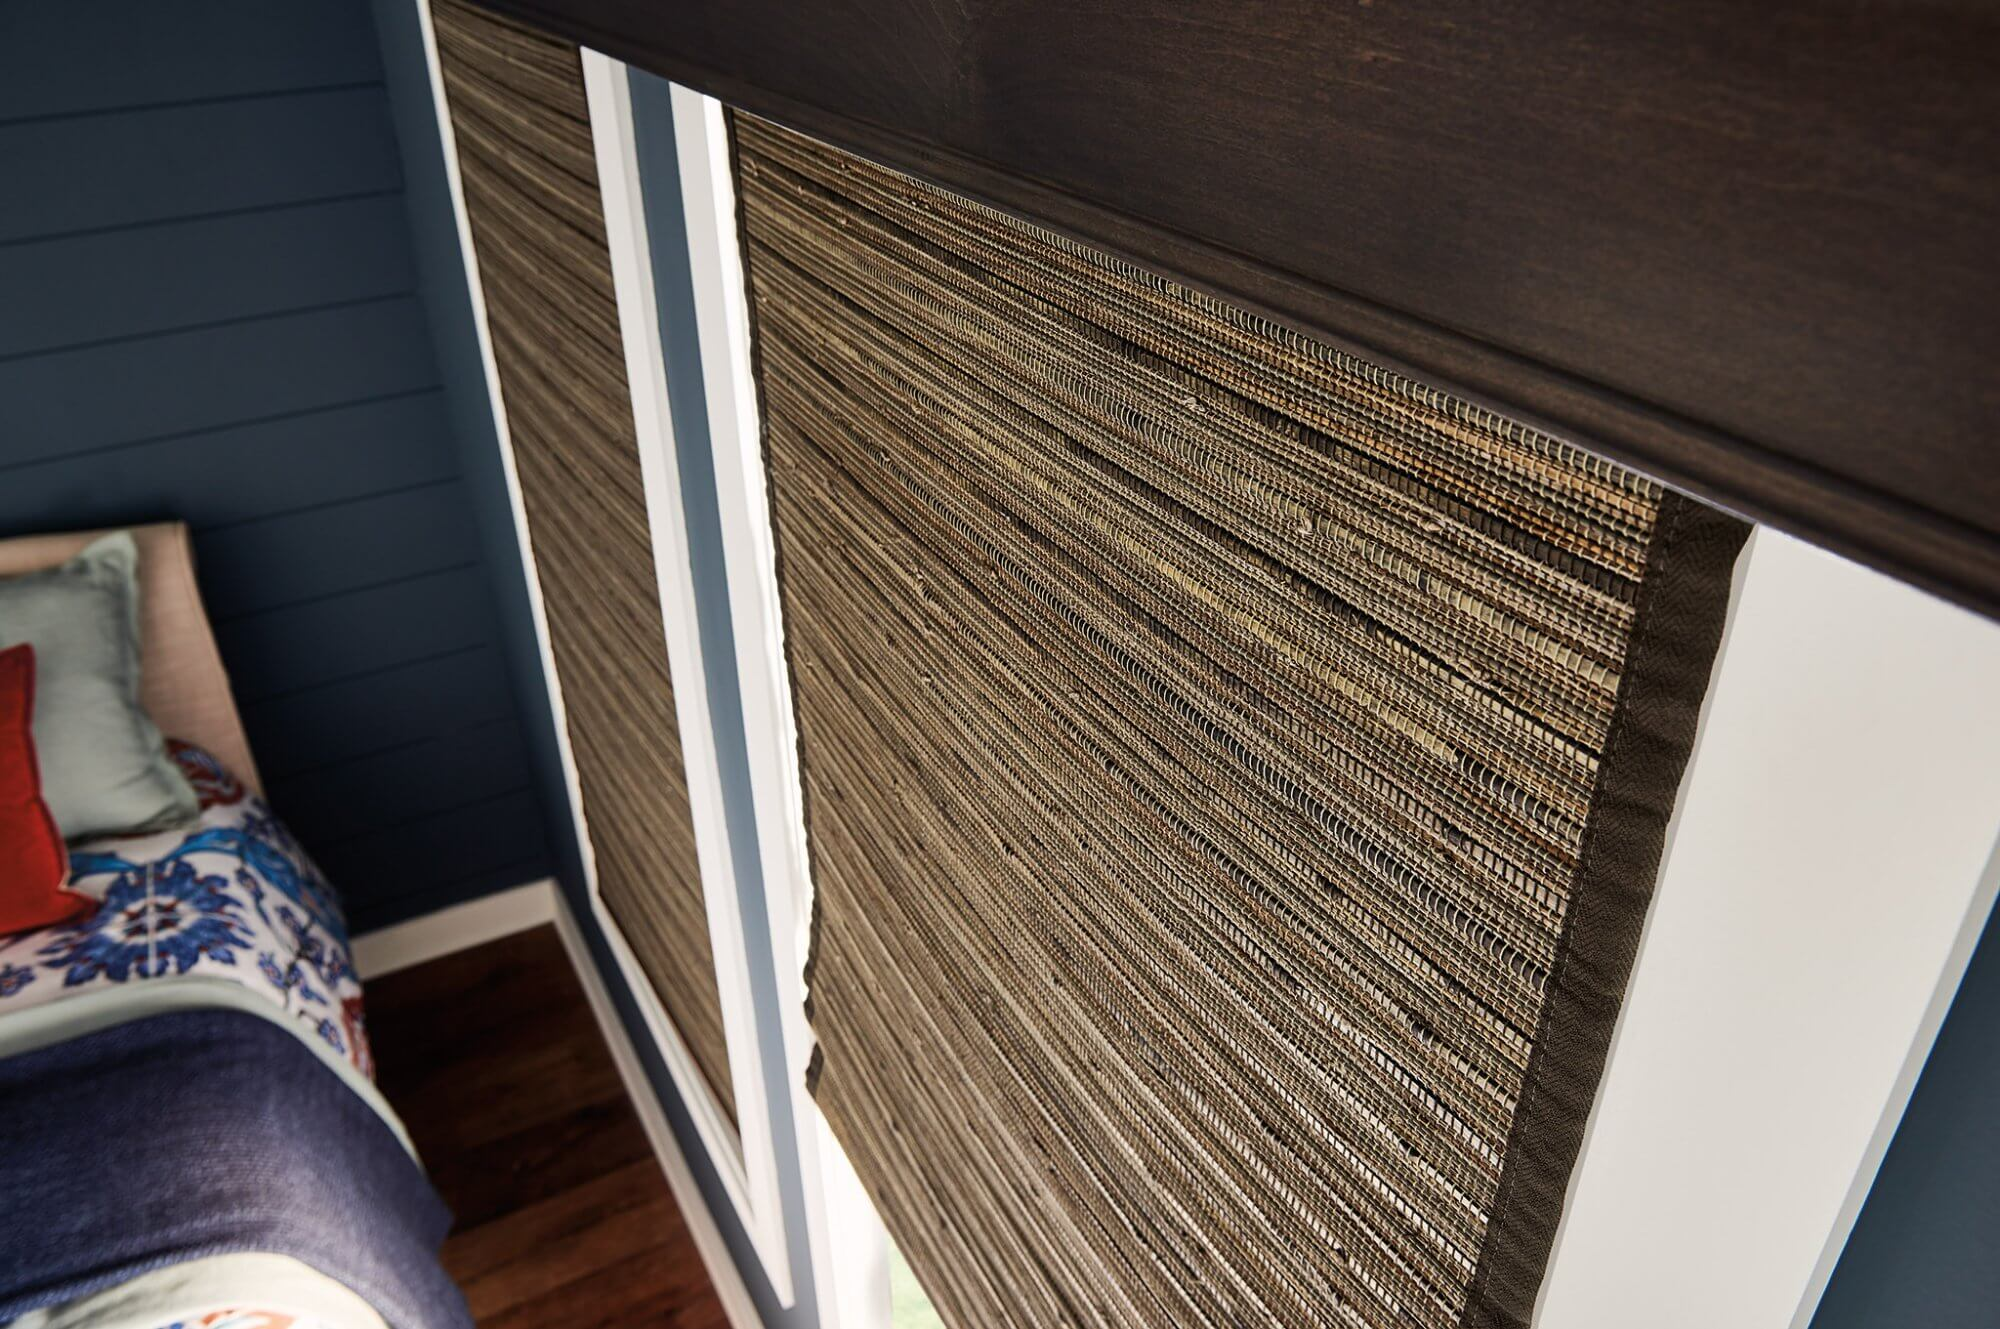 Natural fibers and eco-friendly materials will continue to be a popular choice for 2021 in interior design and window treatments.